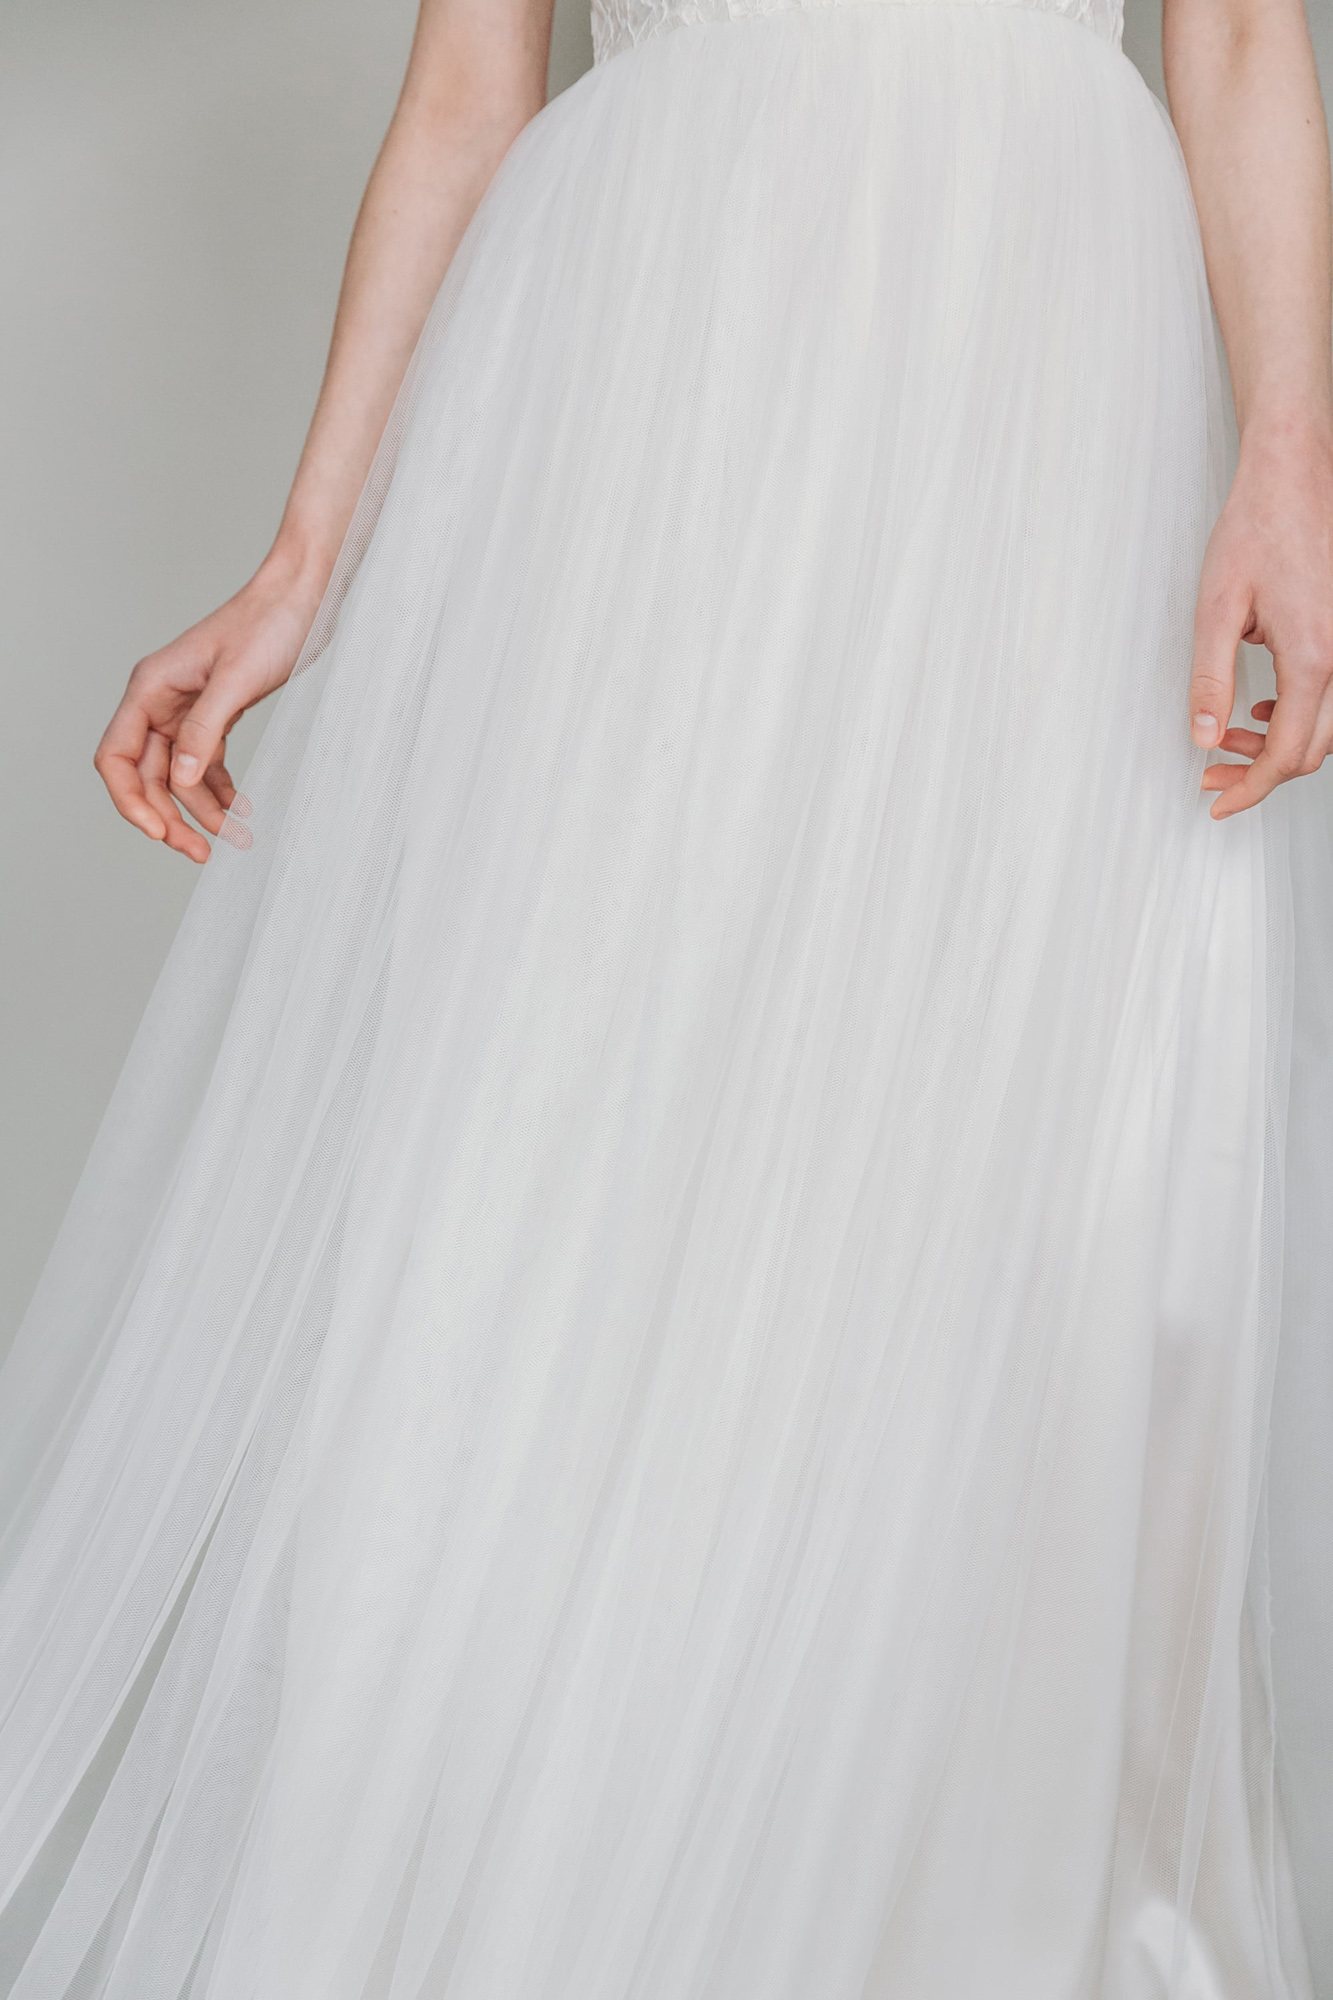 Kate-Beaumont-Sheffield-Mimosa-Lace-Tulle-Bohemian-Wedding-Gown-6.jpg